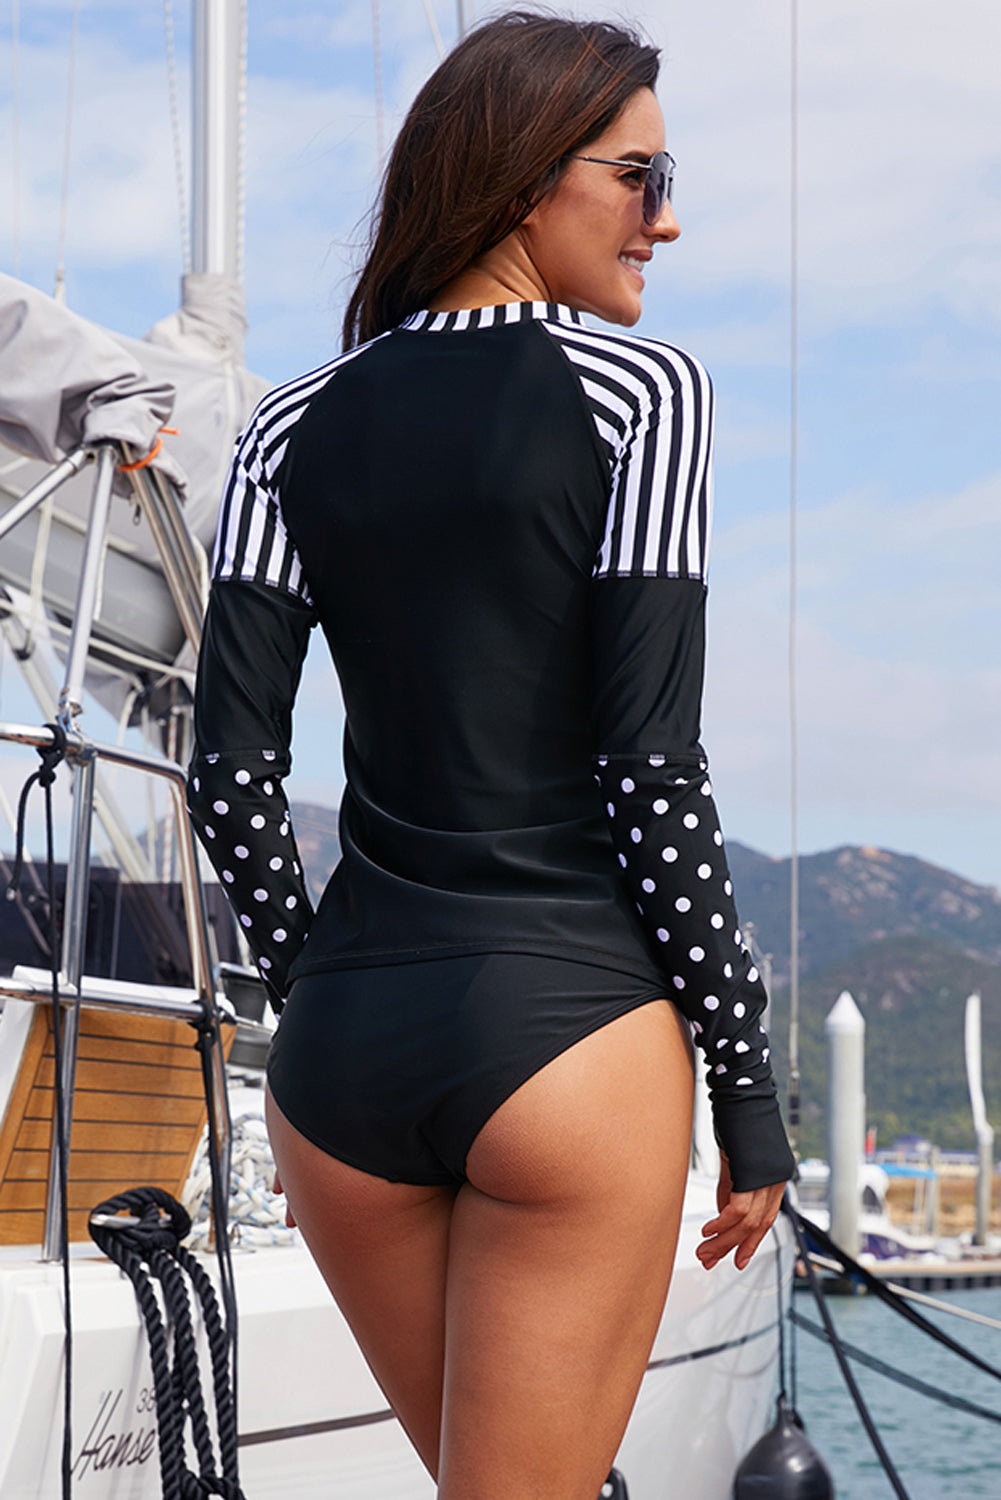 Black Striped and Polka Dot Detail Rashguard Top